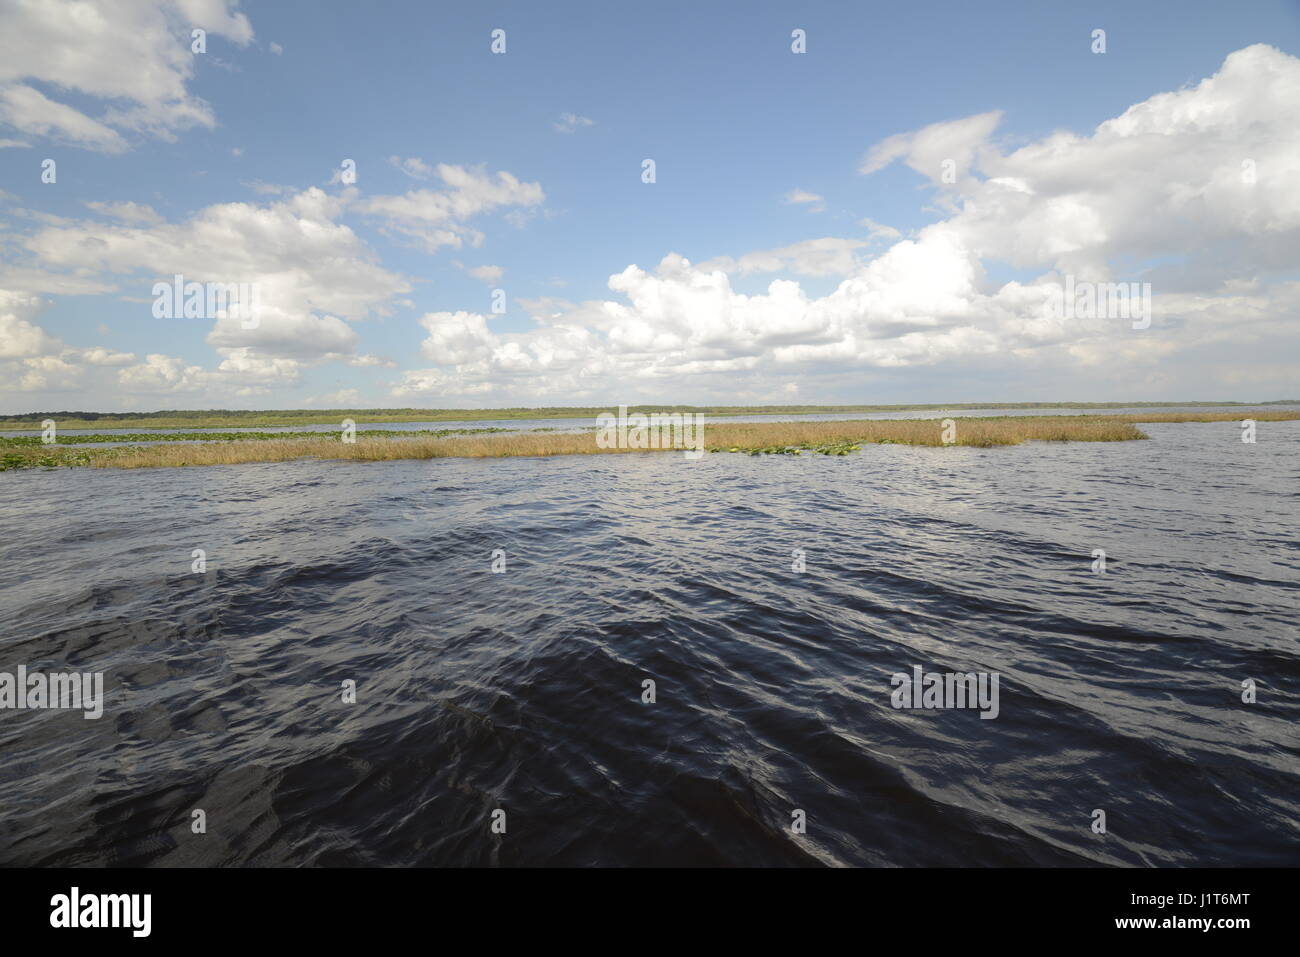 swamp water mid state of Florida USA - Stock Image